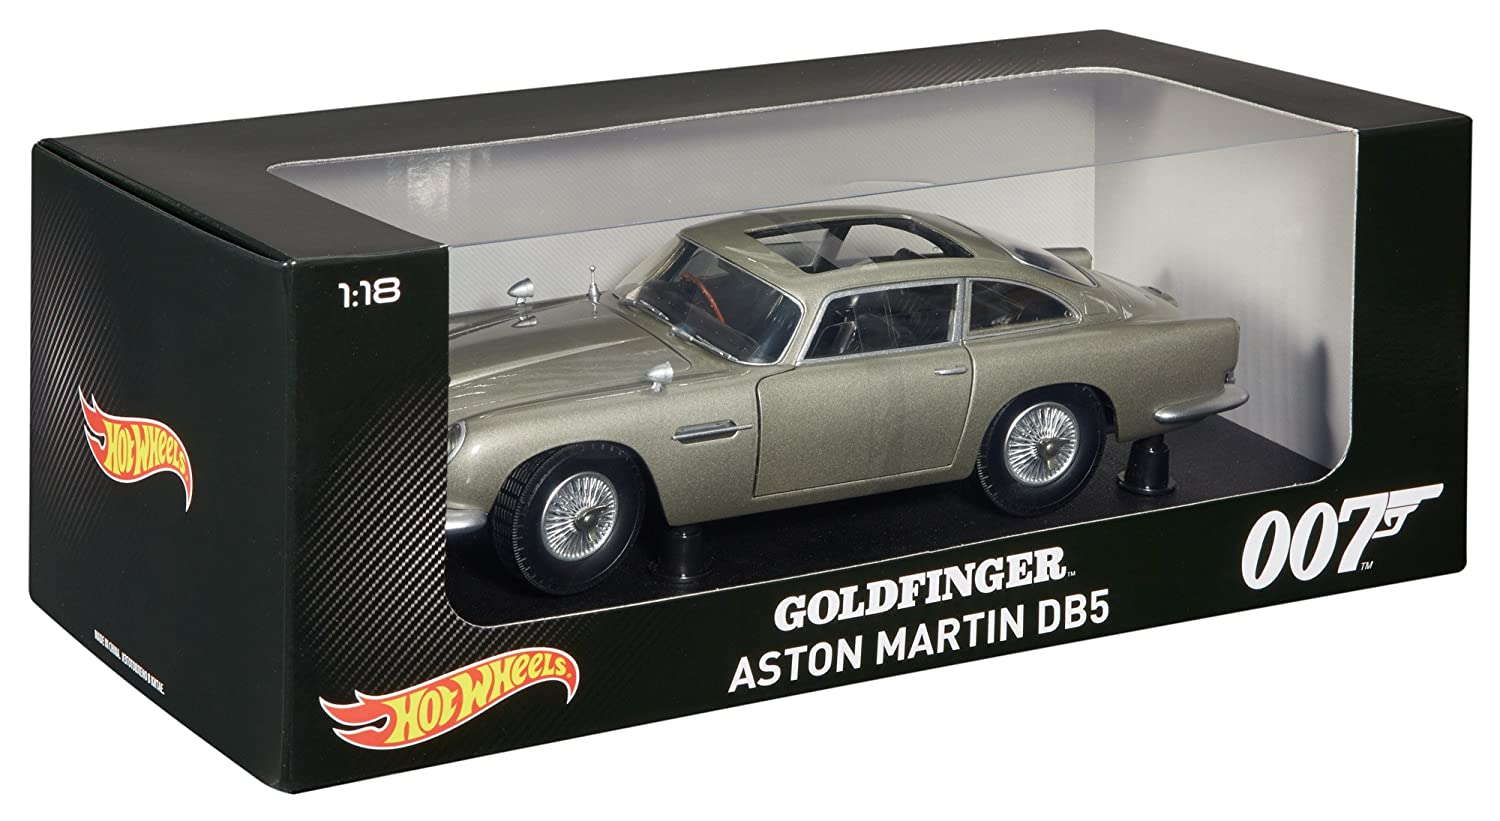 Amazon.com: Hot Wheels Collector James Bond Goldfinger Aston Martin DB5  Die Cast Vehicle (1:18 Scale): Toys U0026 Games